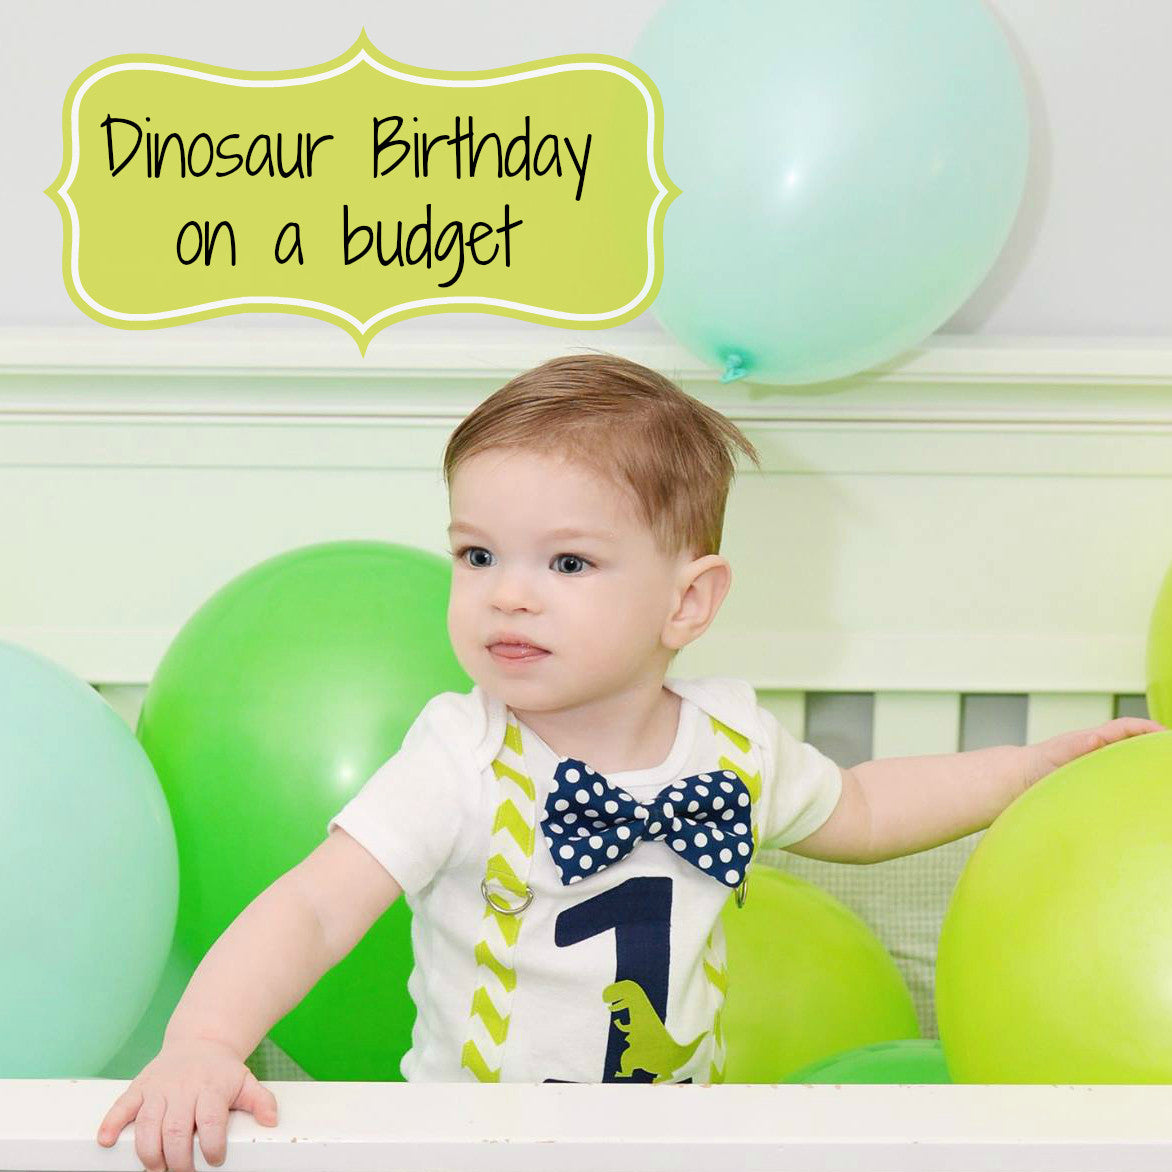 Real Moms Plan Parties: Dinosaur Theme Birthday